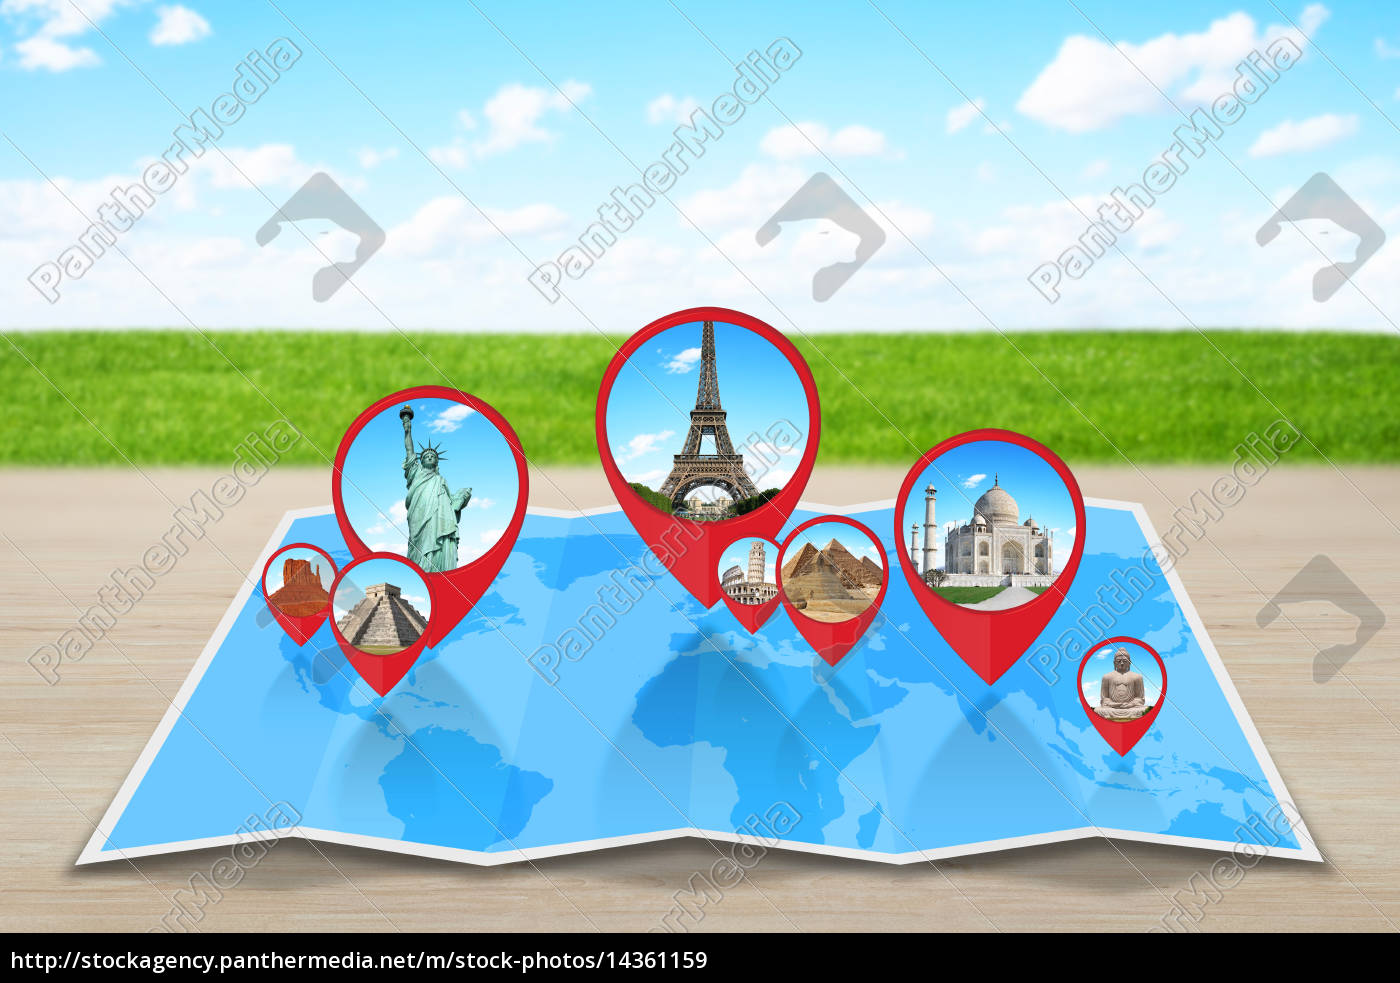 Royalty free image 14361159 - Pin map icon on a blue map